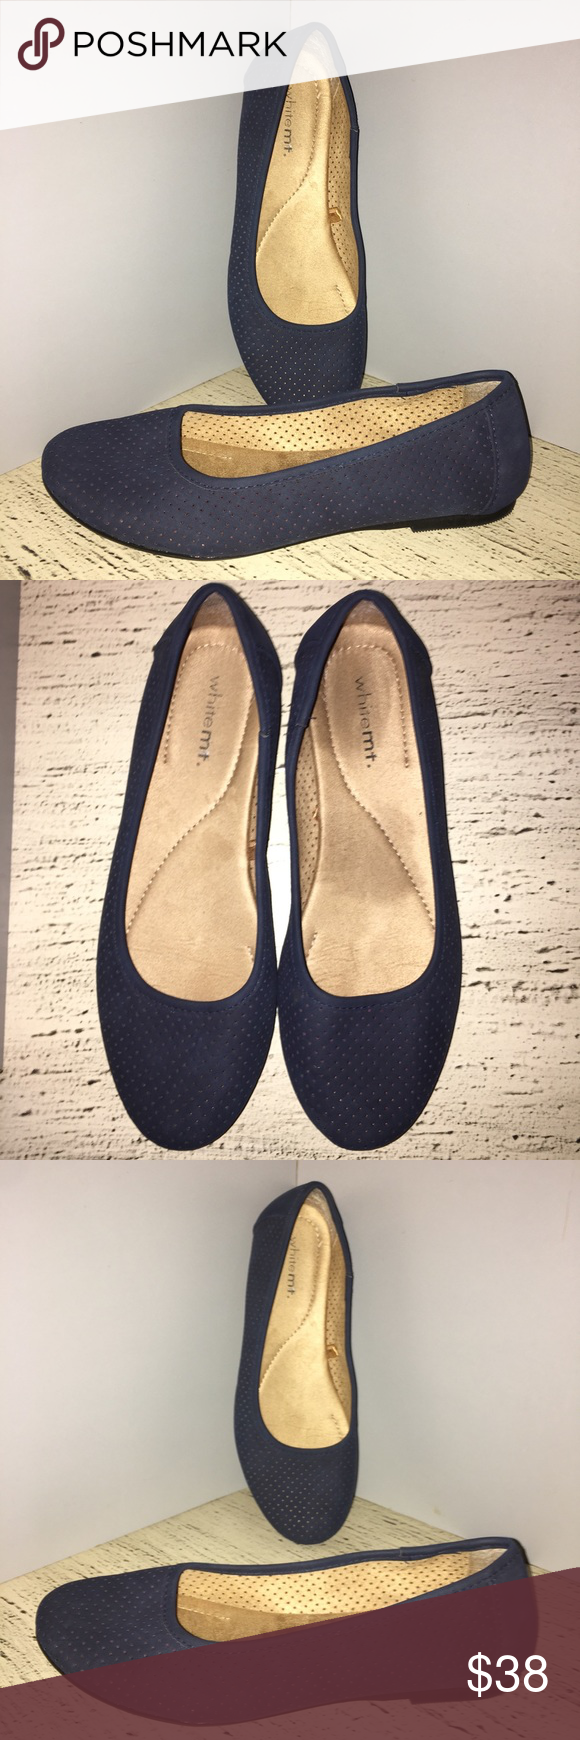 Beautiful White Mt Blue Shoes With Perforations White Mountain Stylish Flat Blue Shoes With Cute Perforations You Are Going To Love These Beautiful